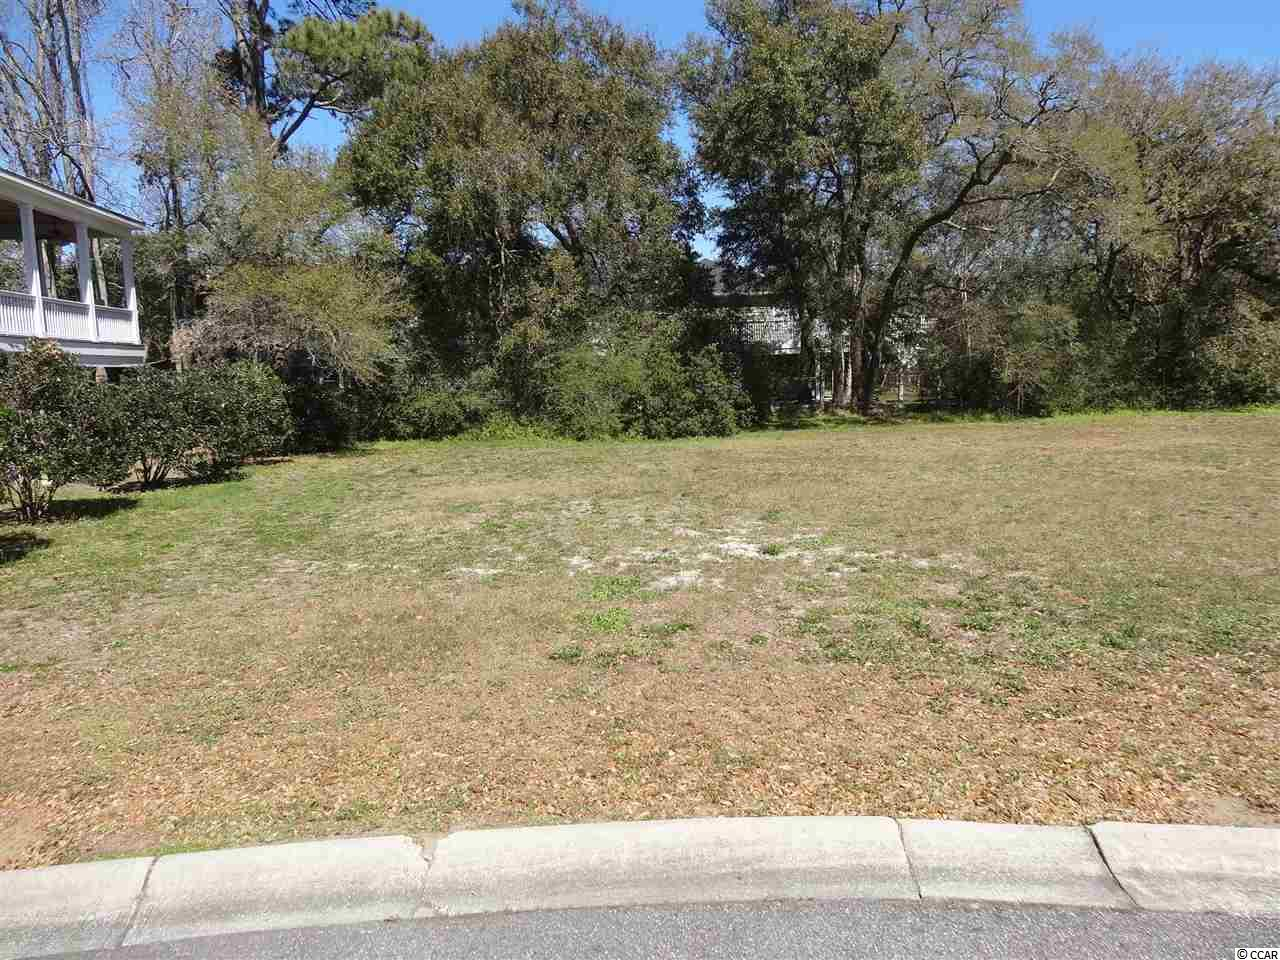 Lot 26 Orchard Ave, Murrells Inlet, SC 29576